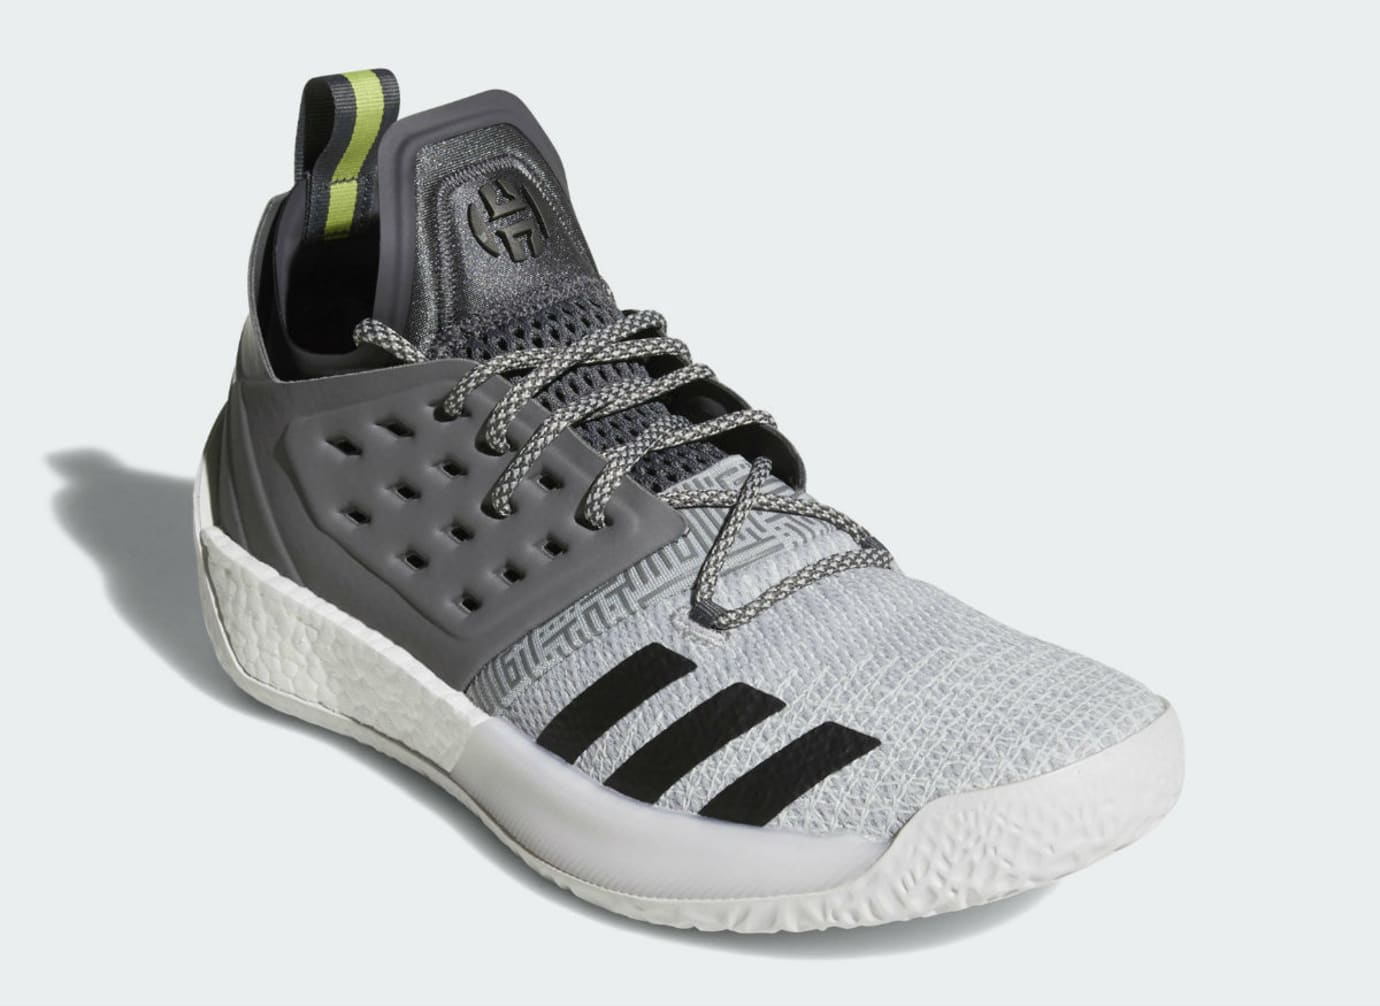 Adidas Harden Vol. 2 Concrete Grey Release Date AH2122 Front 077fae4951